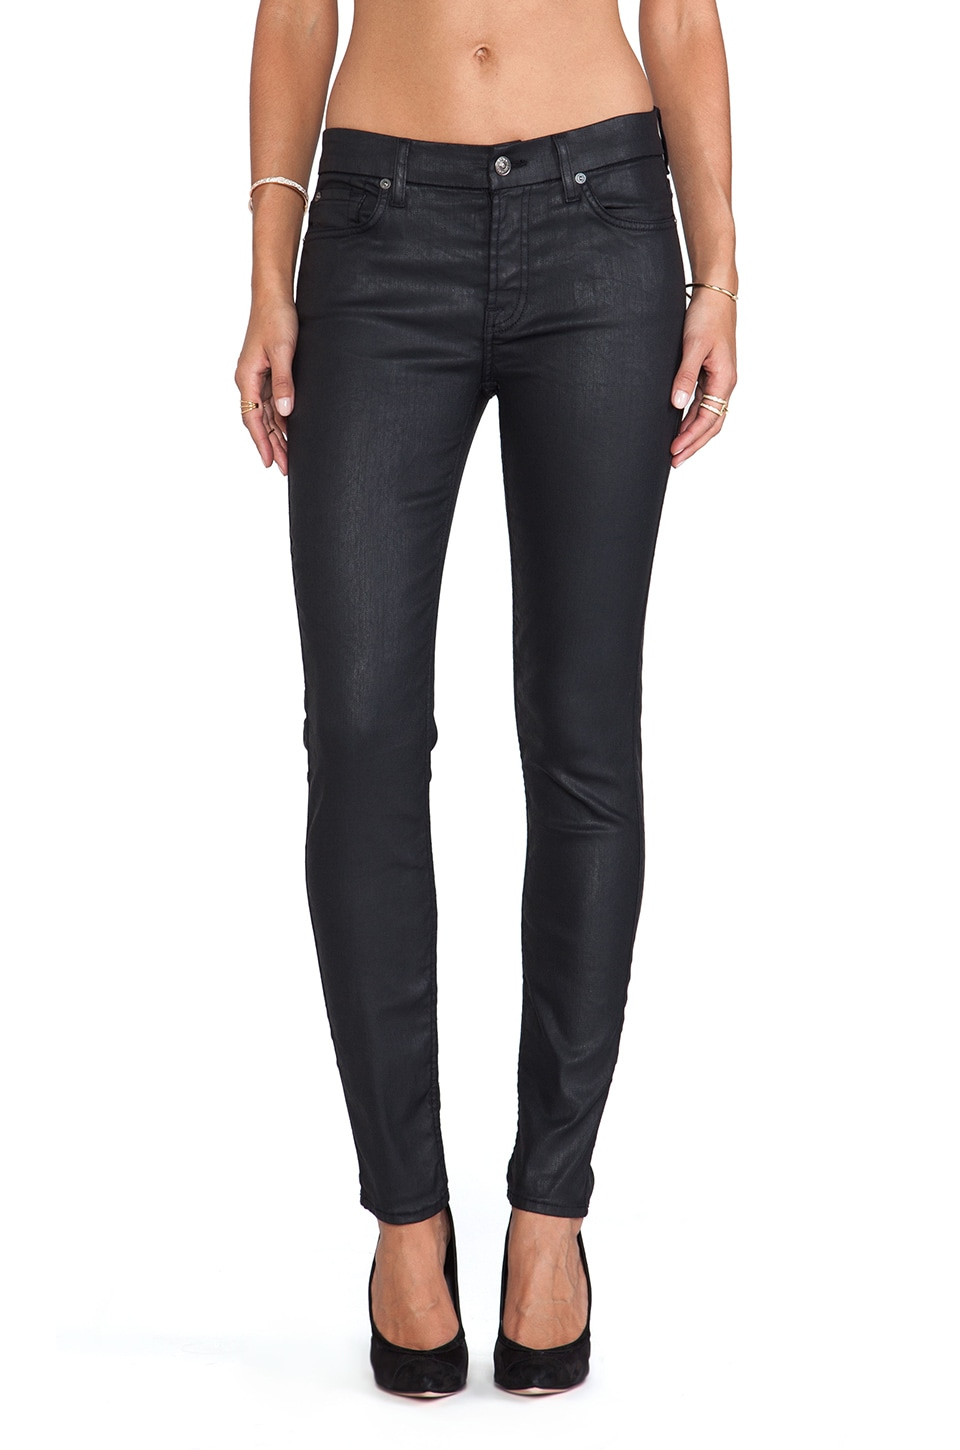 7 For All Mankind Mid Rise Ankle Skinny Jeather in Black